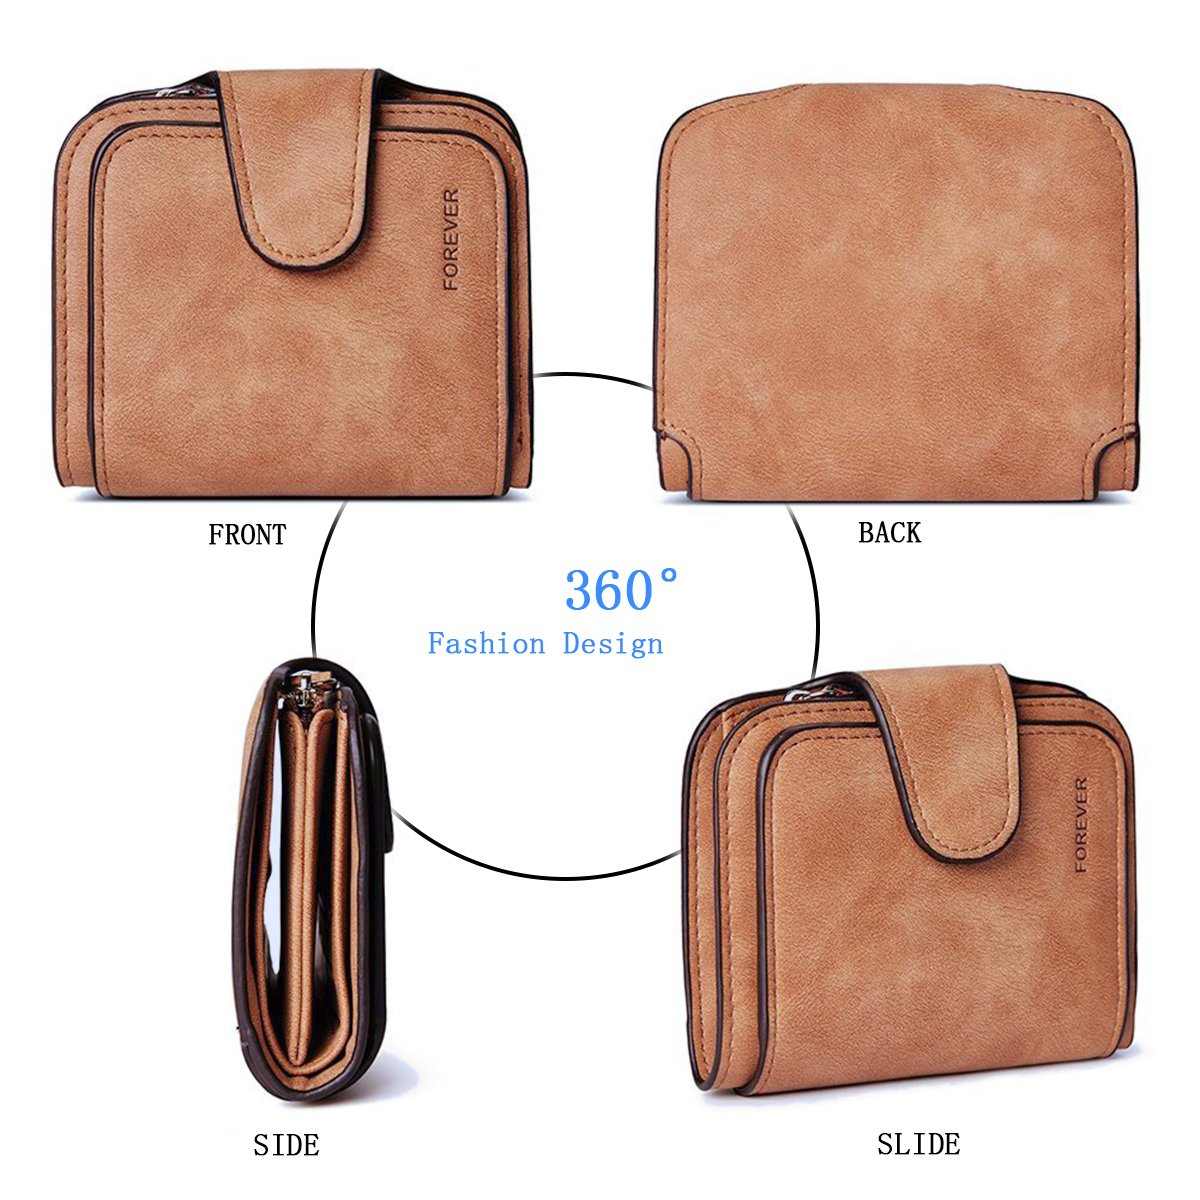 Wallet for Women Leather Clutch Short Purse Ladies Credit Card Holder Organizer with Zip Pocket - Brown by EUGO (Image #5)